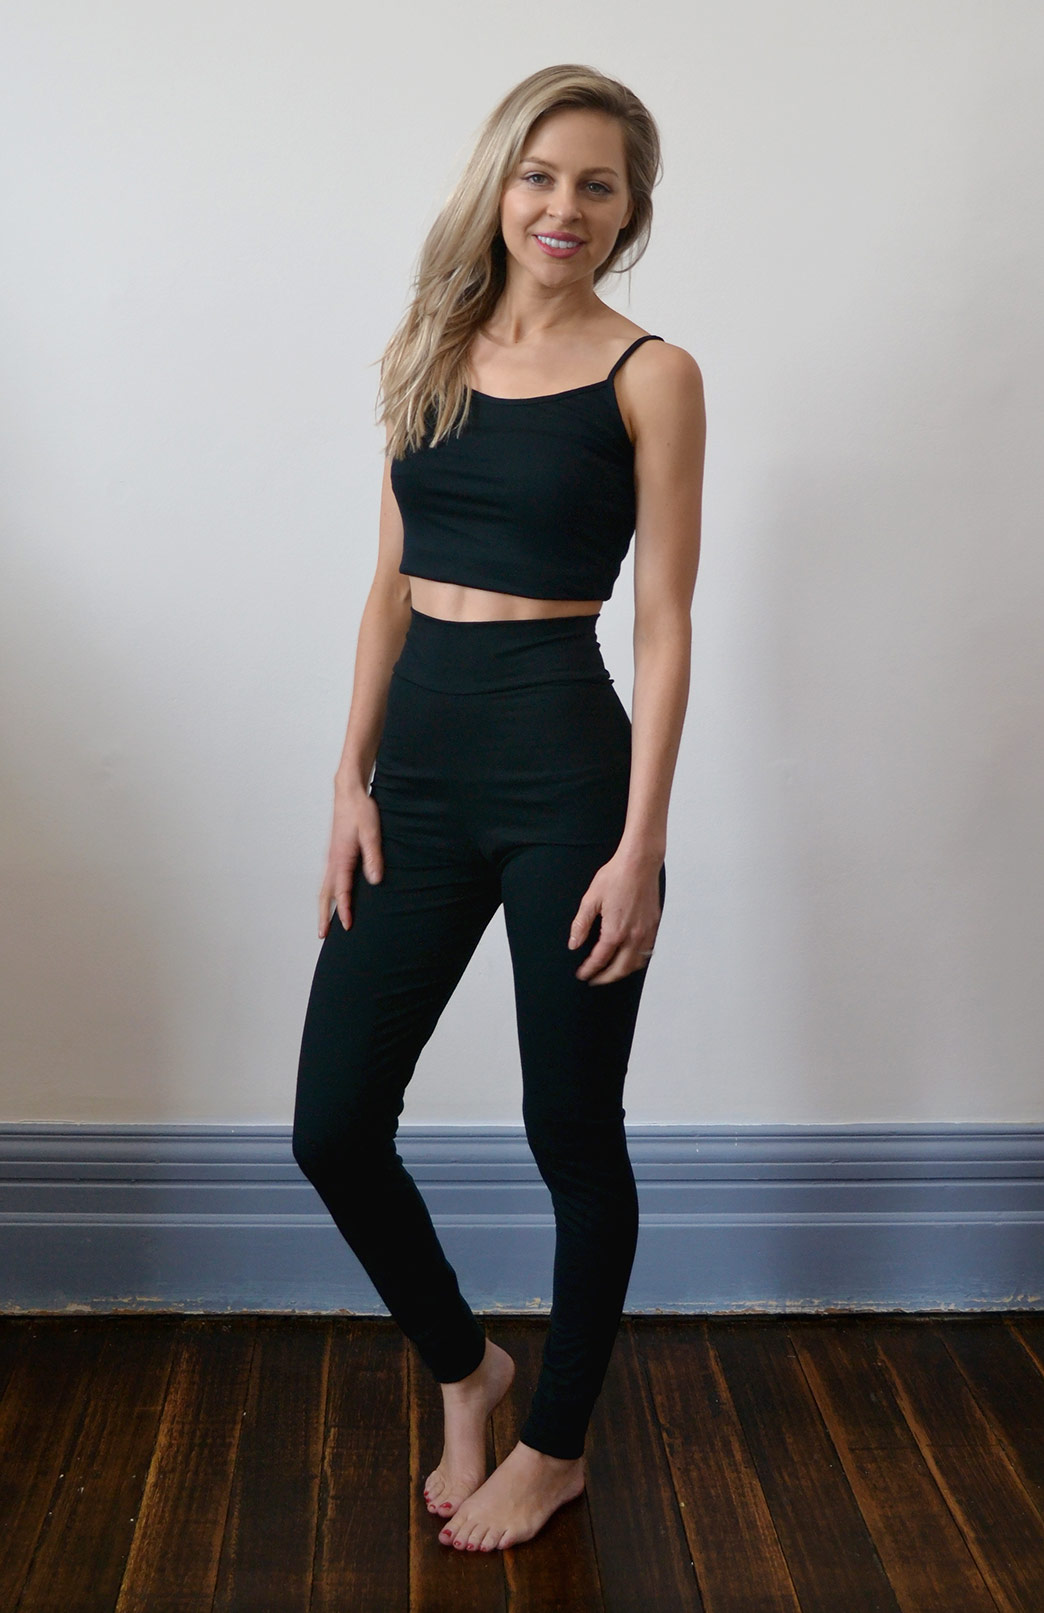 Our Model wearing High Waisted Fleece Leggings